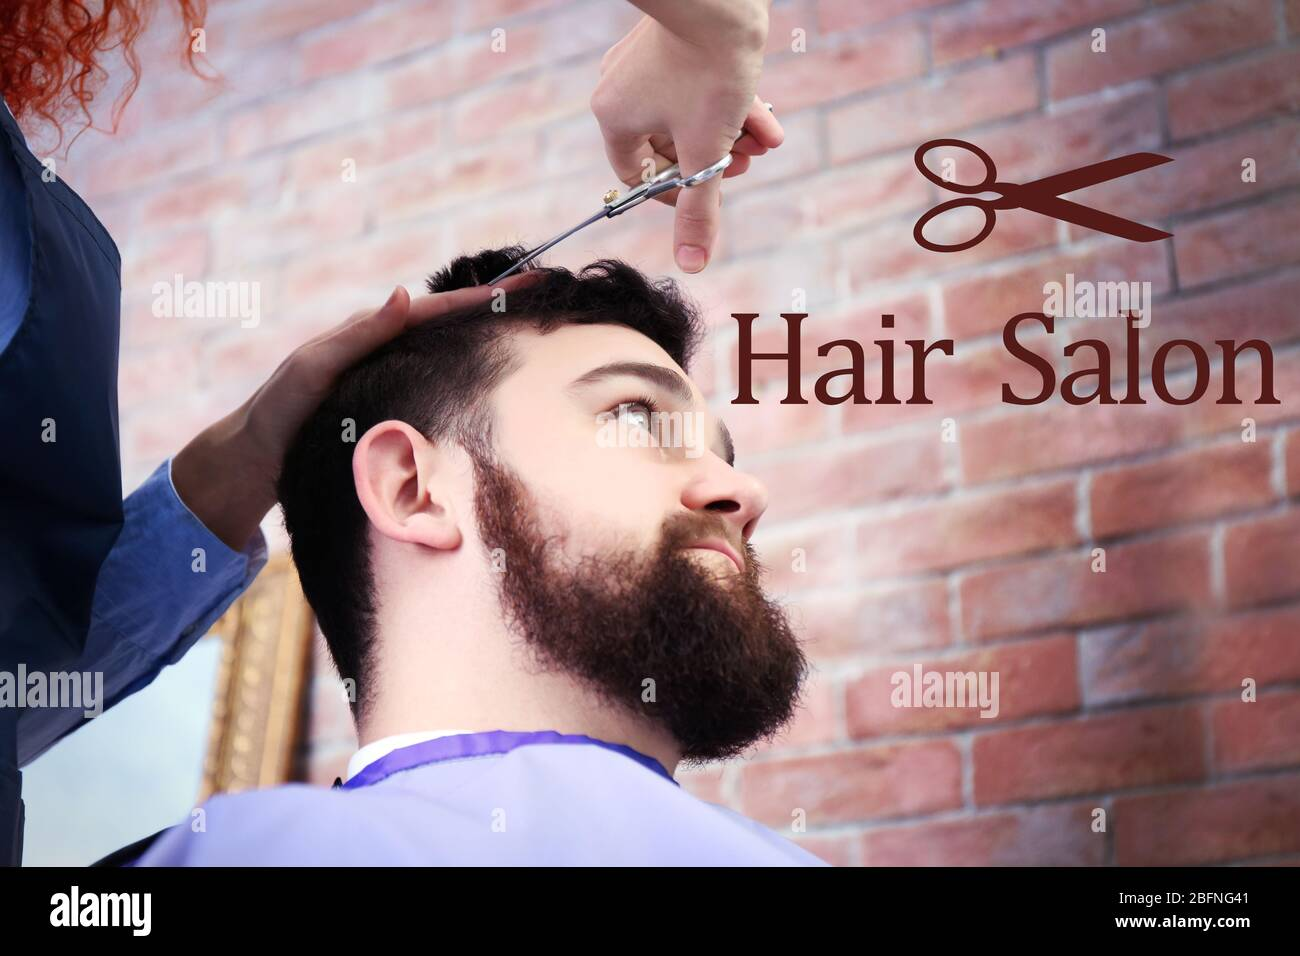 text hair salon on background. young man at barbershop stock photo - alamy  alamy